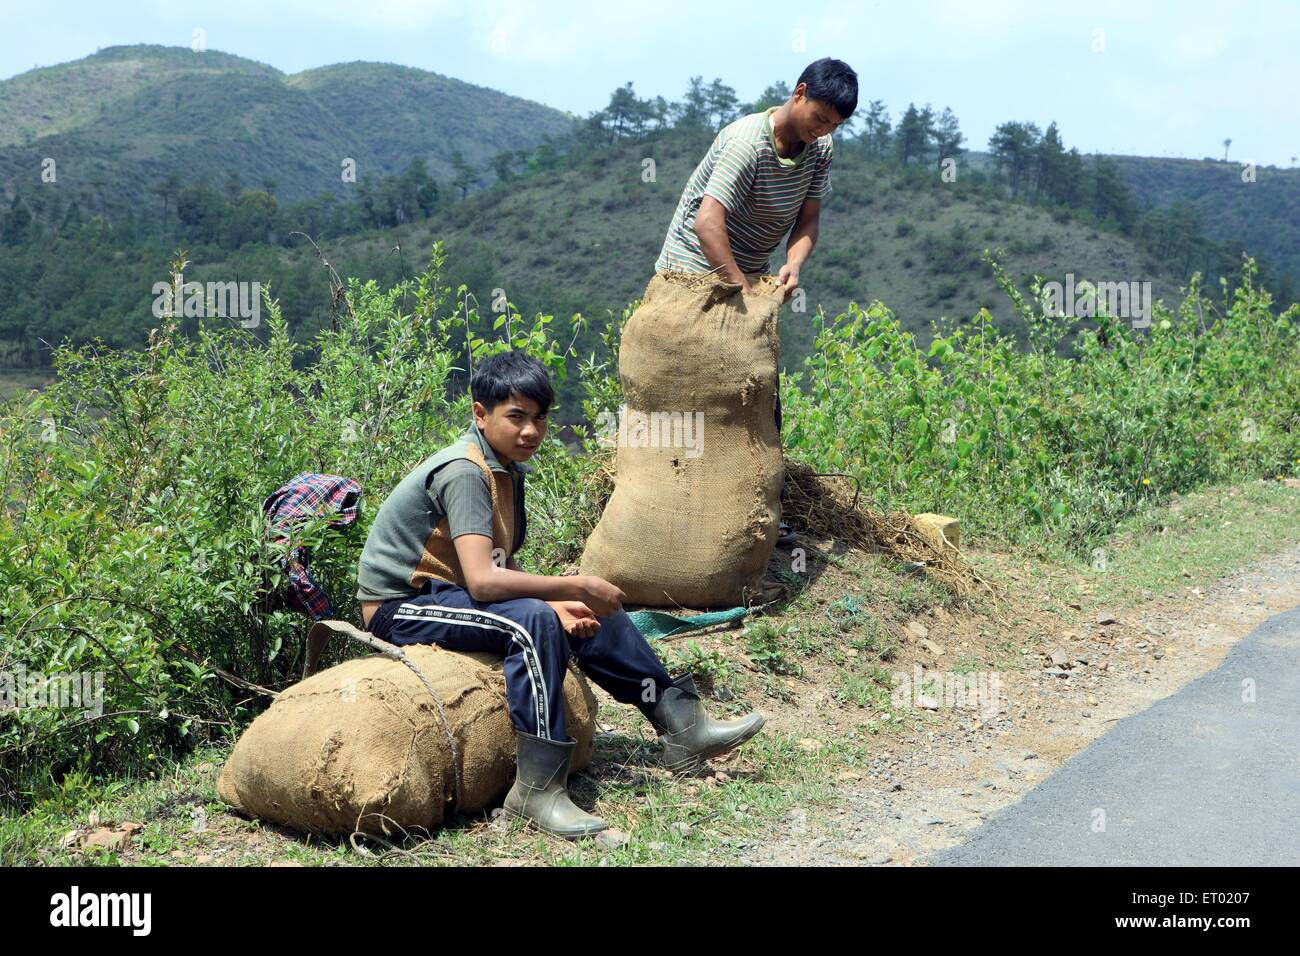 Tribal boys with their farm yields on a road side ; Shillong ; Meghalaya ; India NOMR Stock Photo